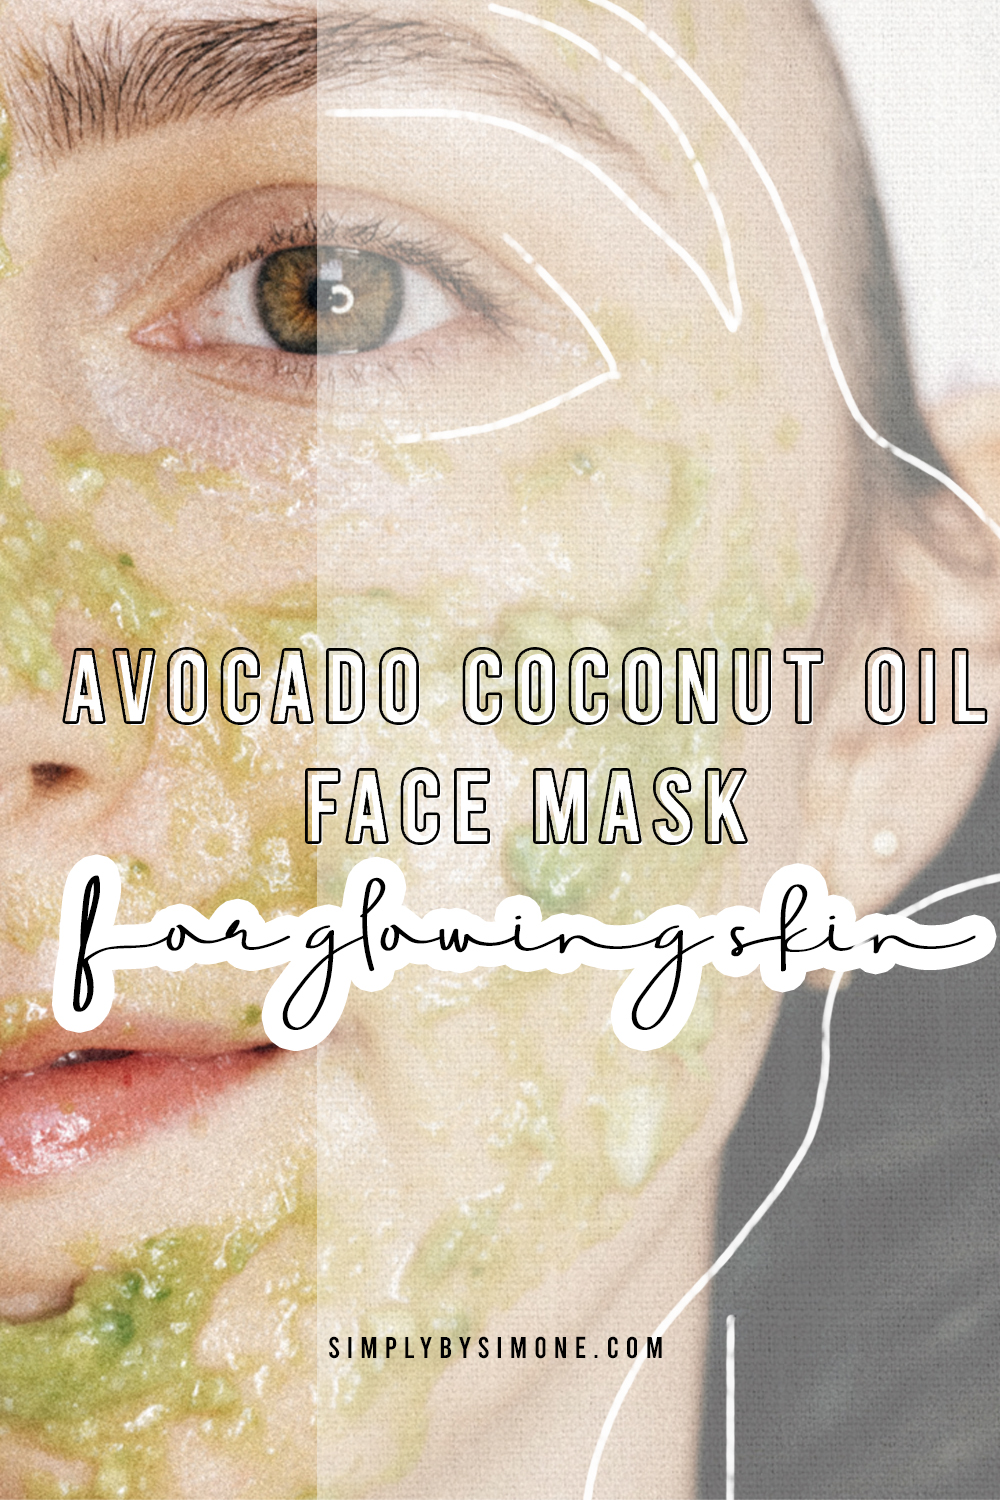 Diy Avocado Coconut Oil Face Mask For Glowing Skin Simply By Simone